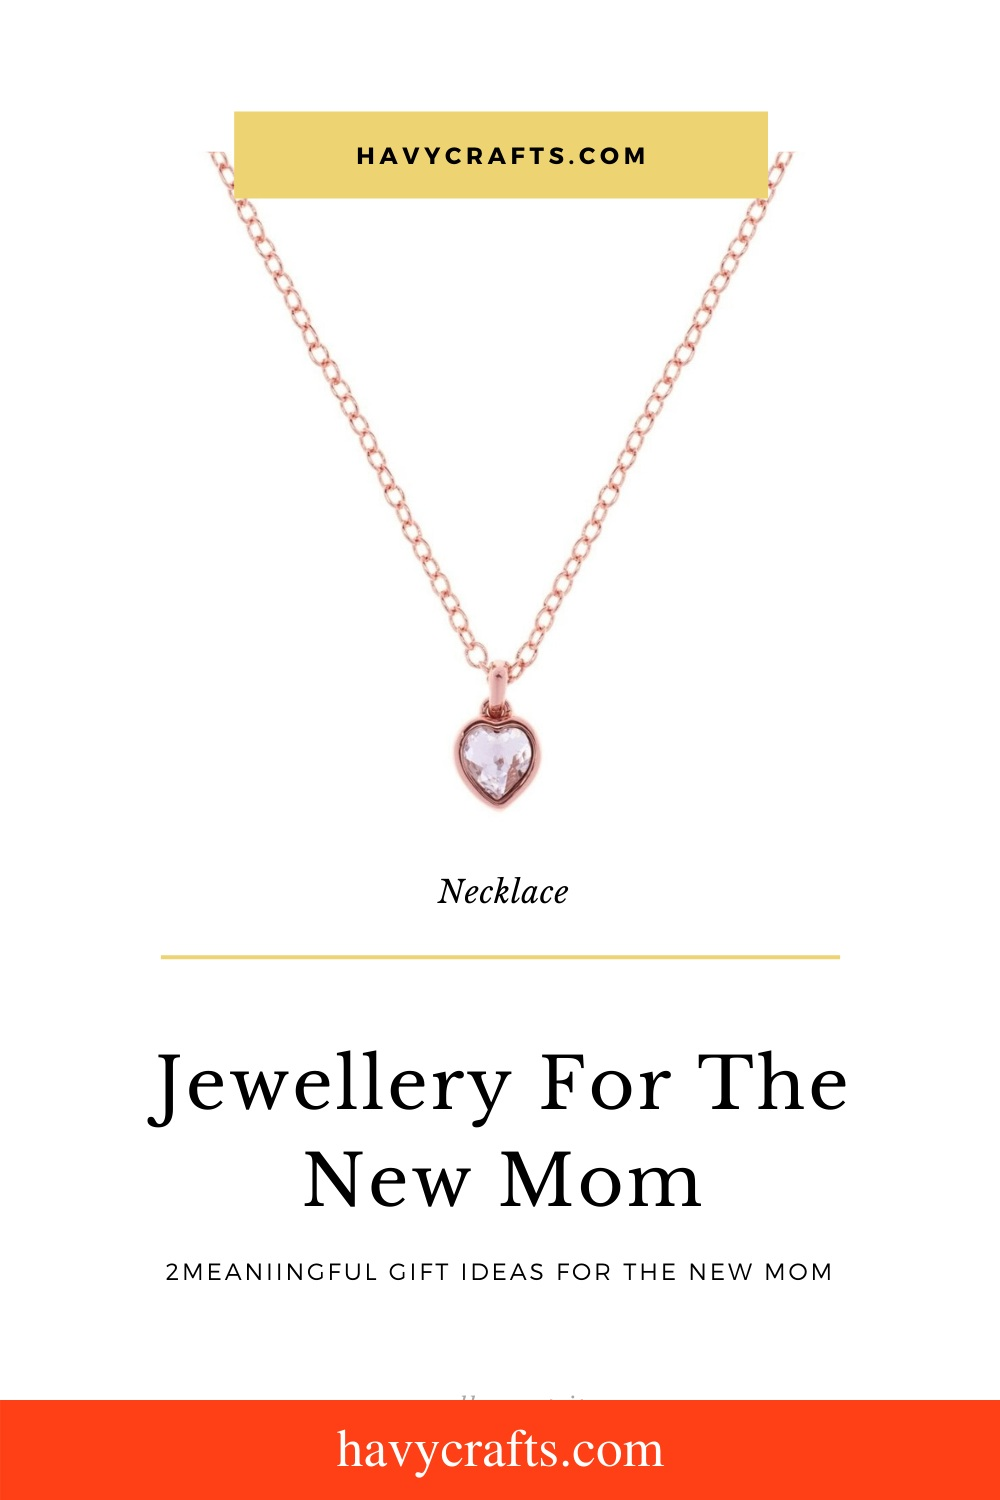 Jewellery for new moms